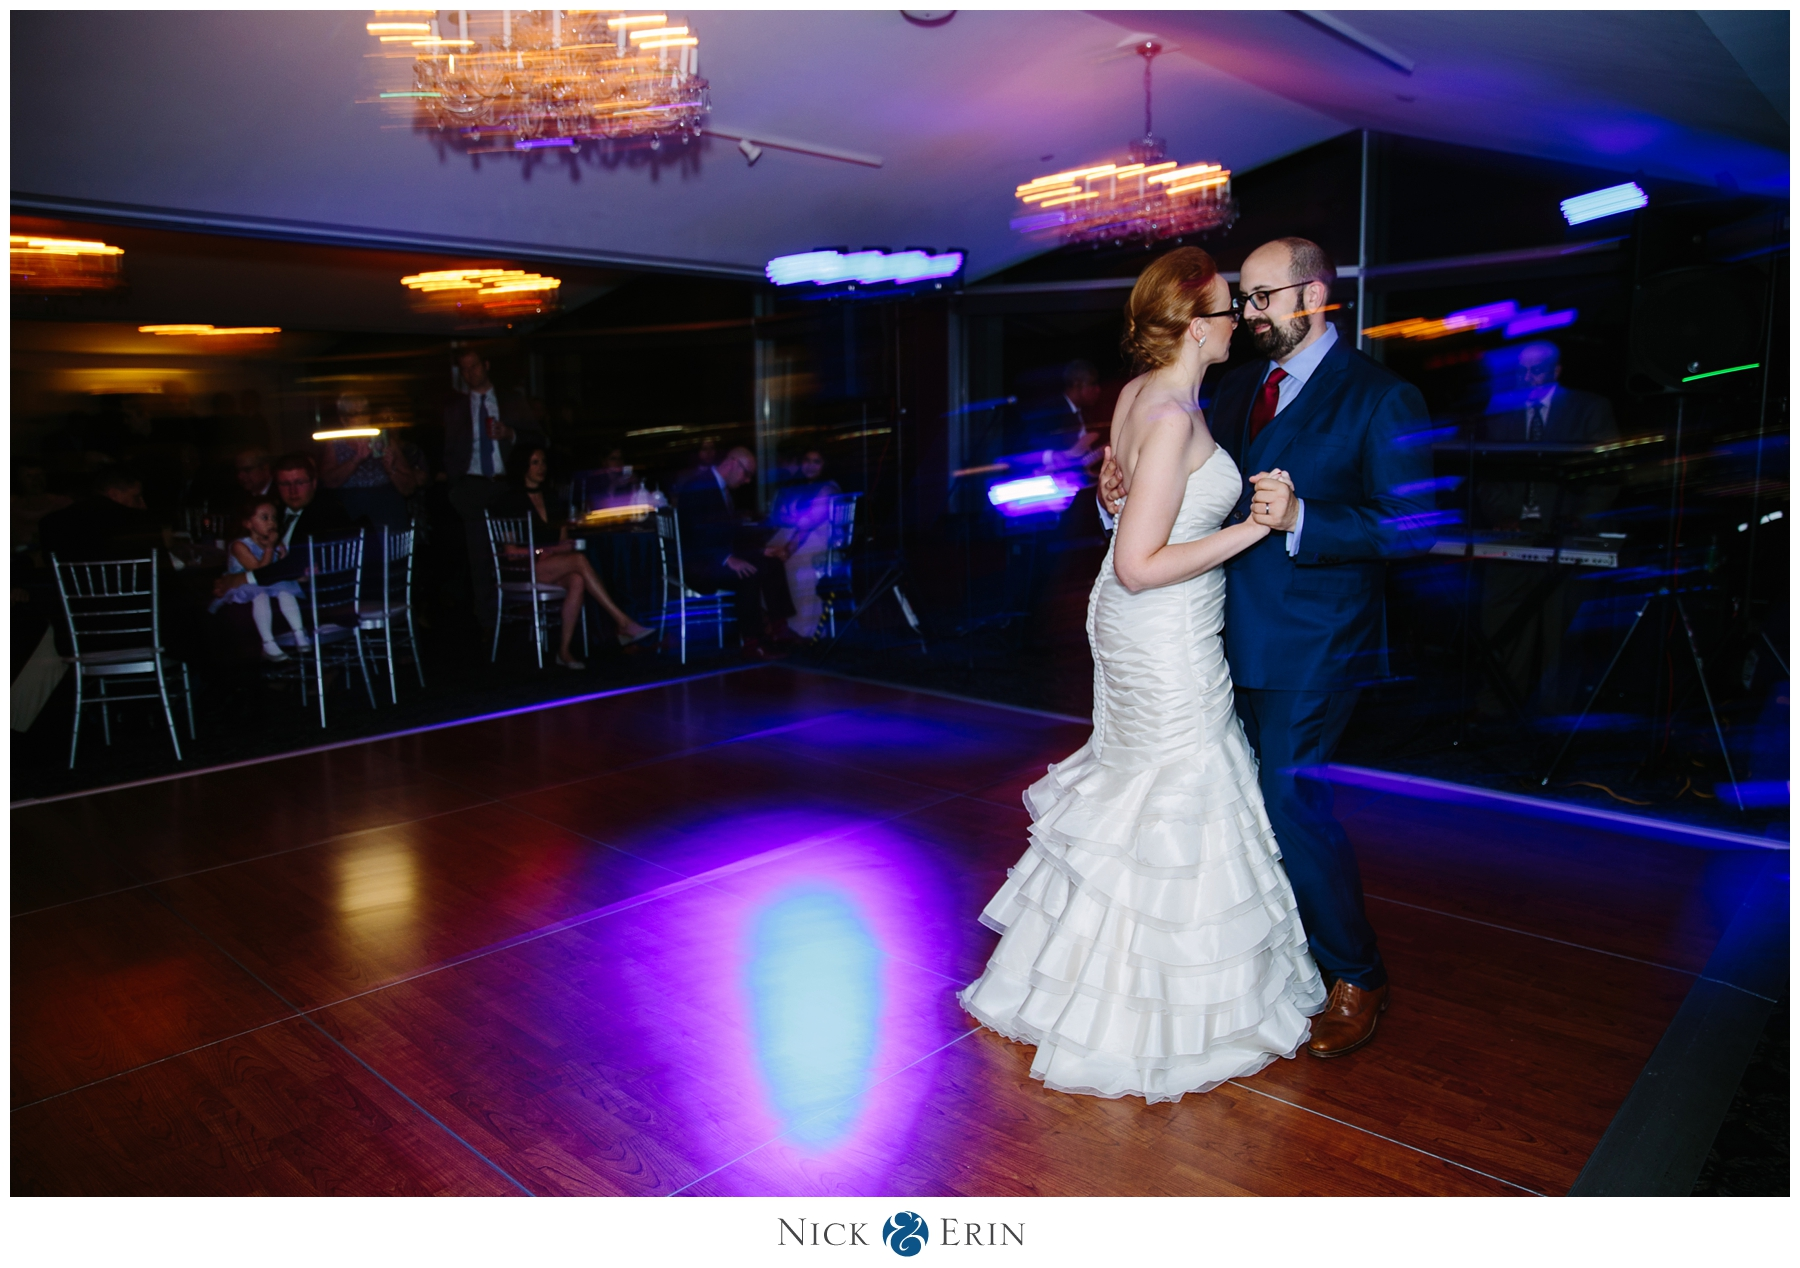 donner_photography_washington-dc-wedding_alanna-josh_0044